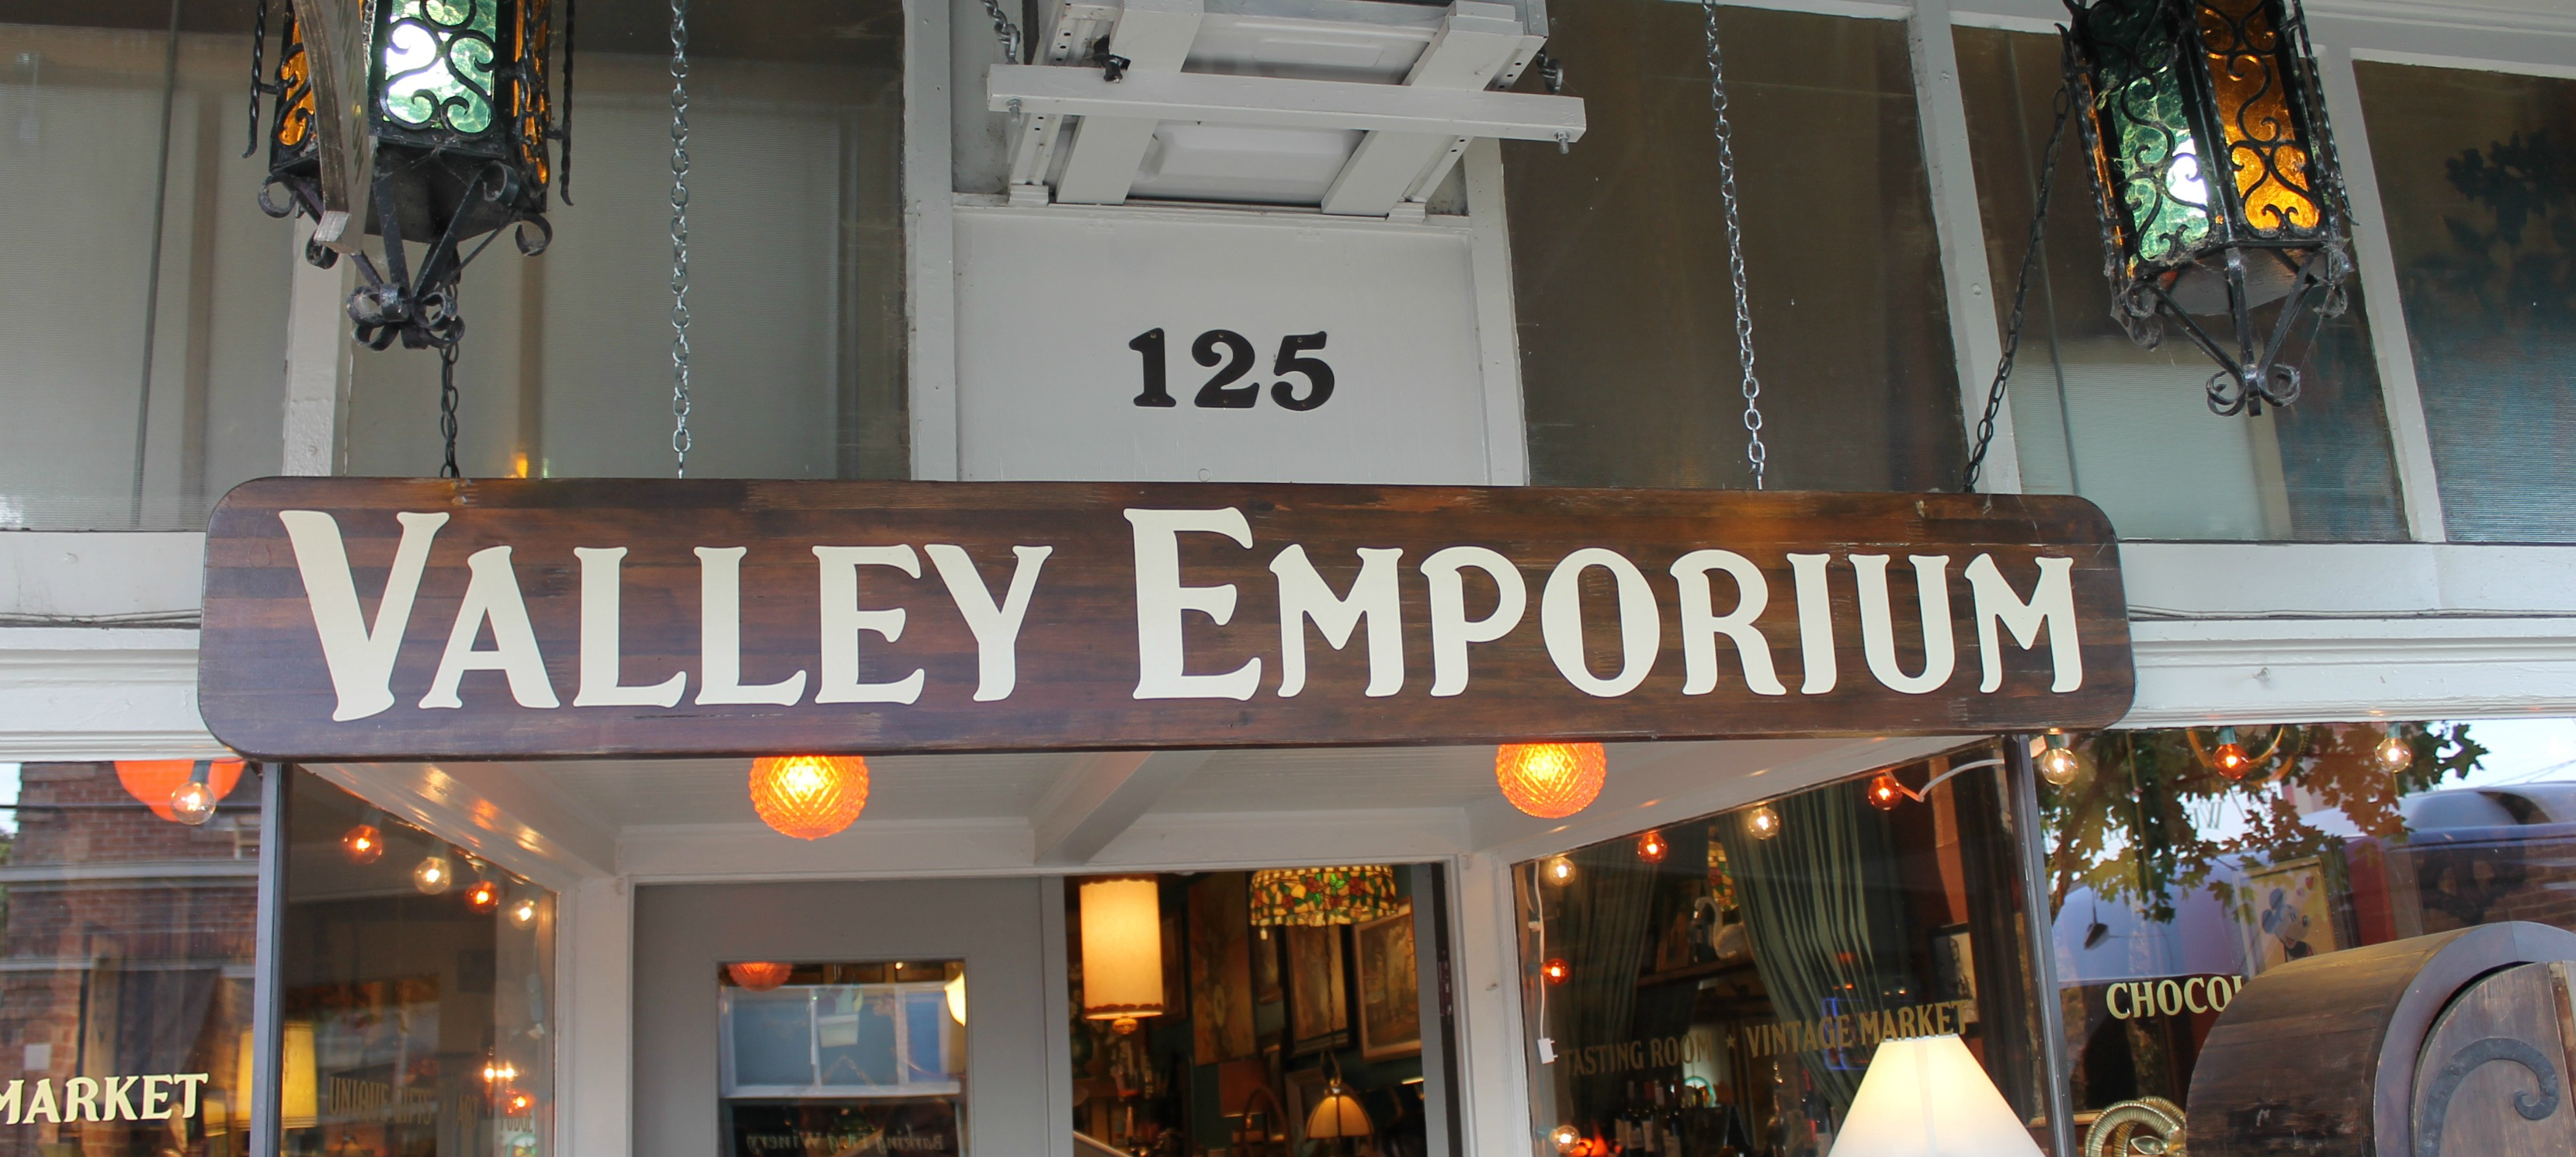 valley emporium